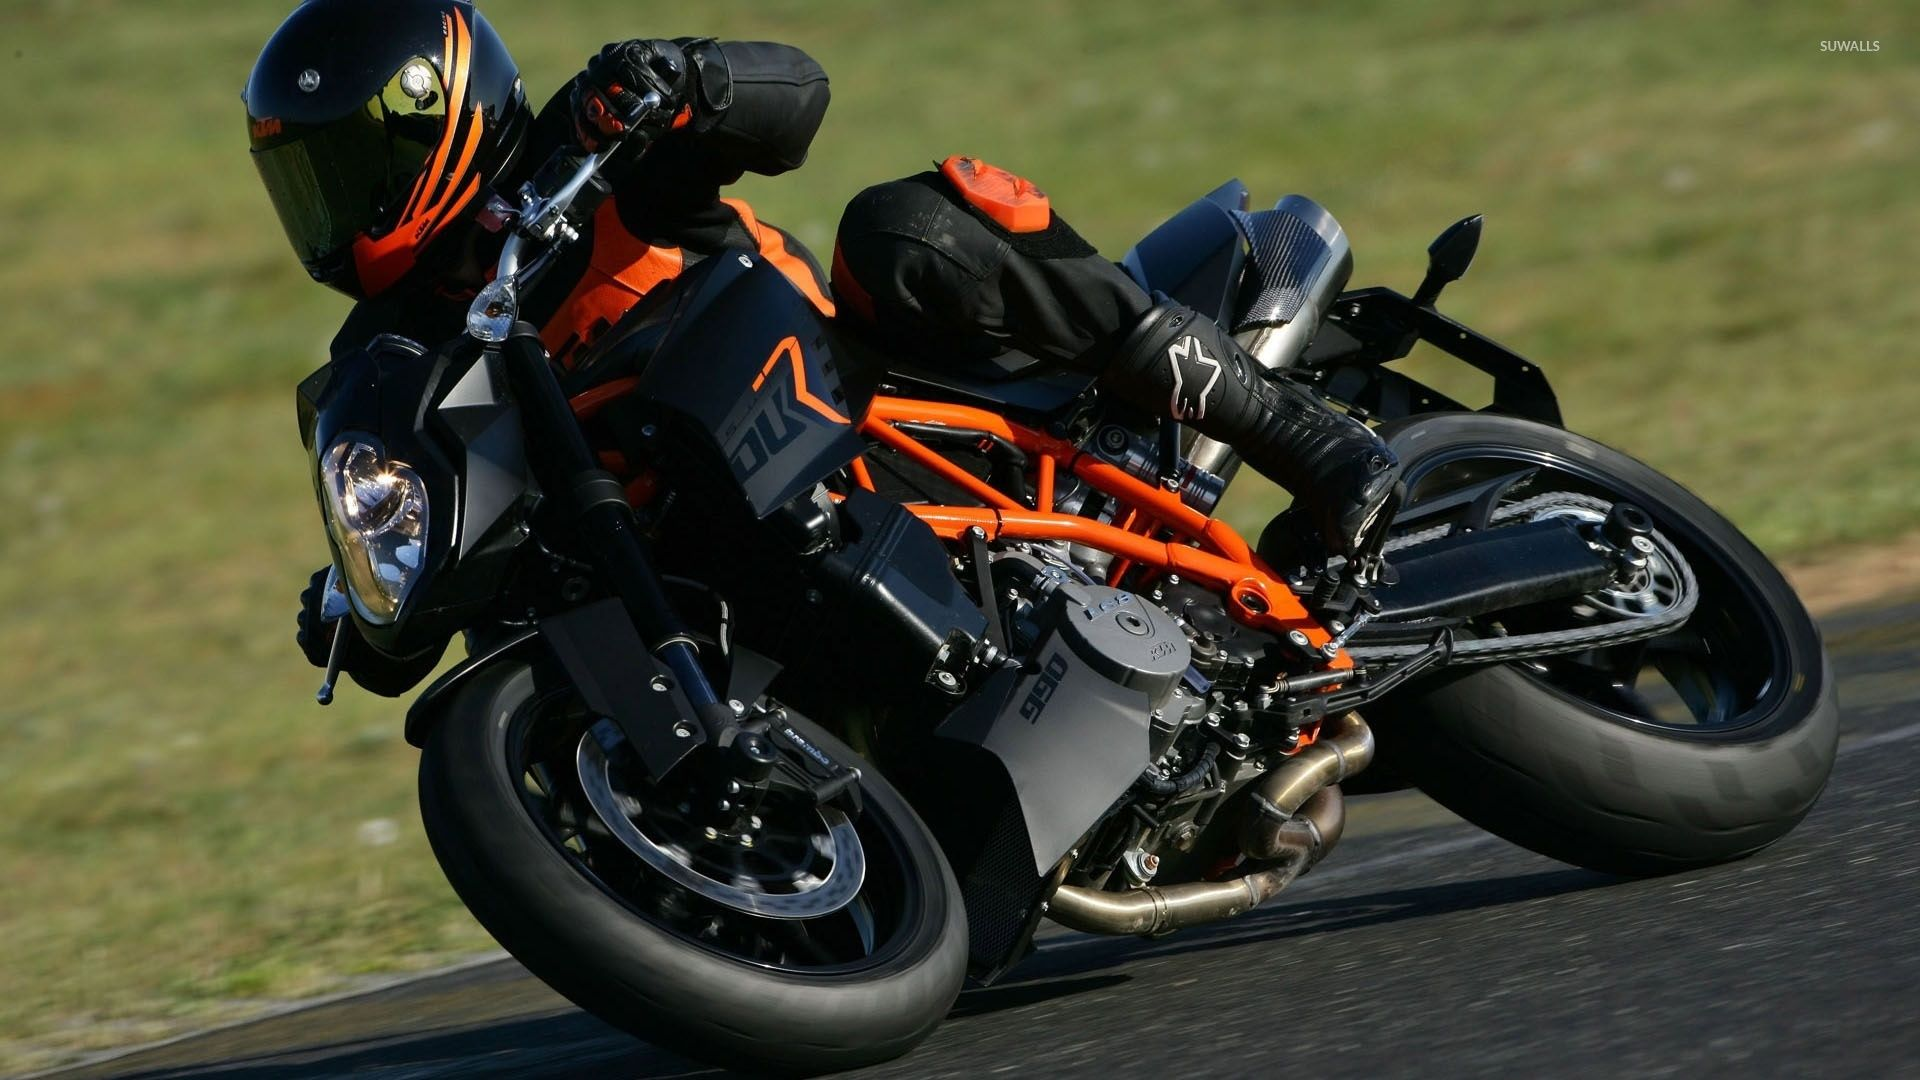 motorbike wallpaper: ktm duke wallpapers high quality with hd 1600